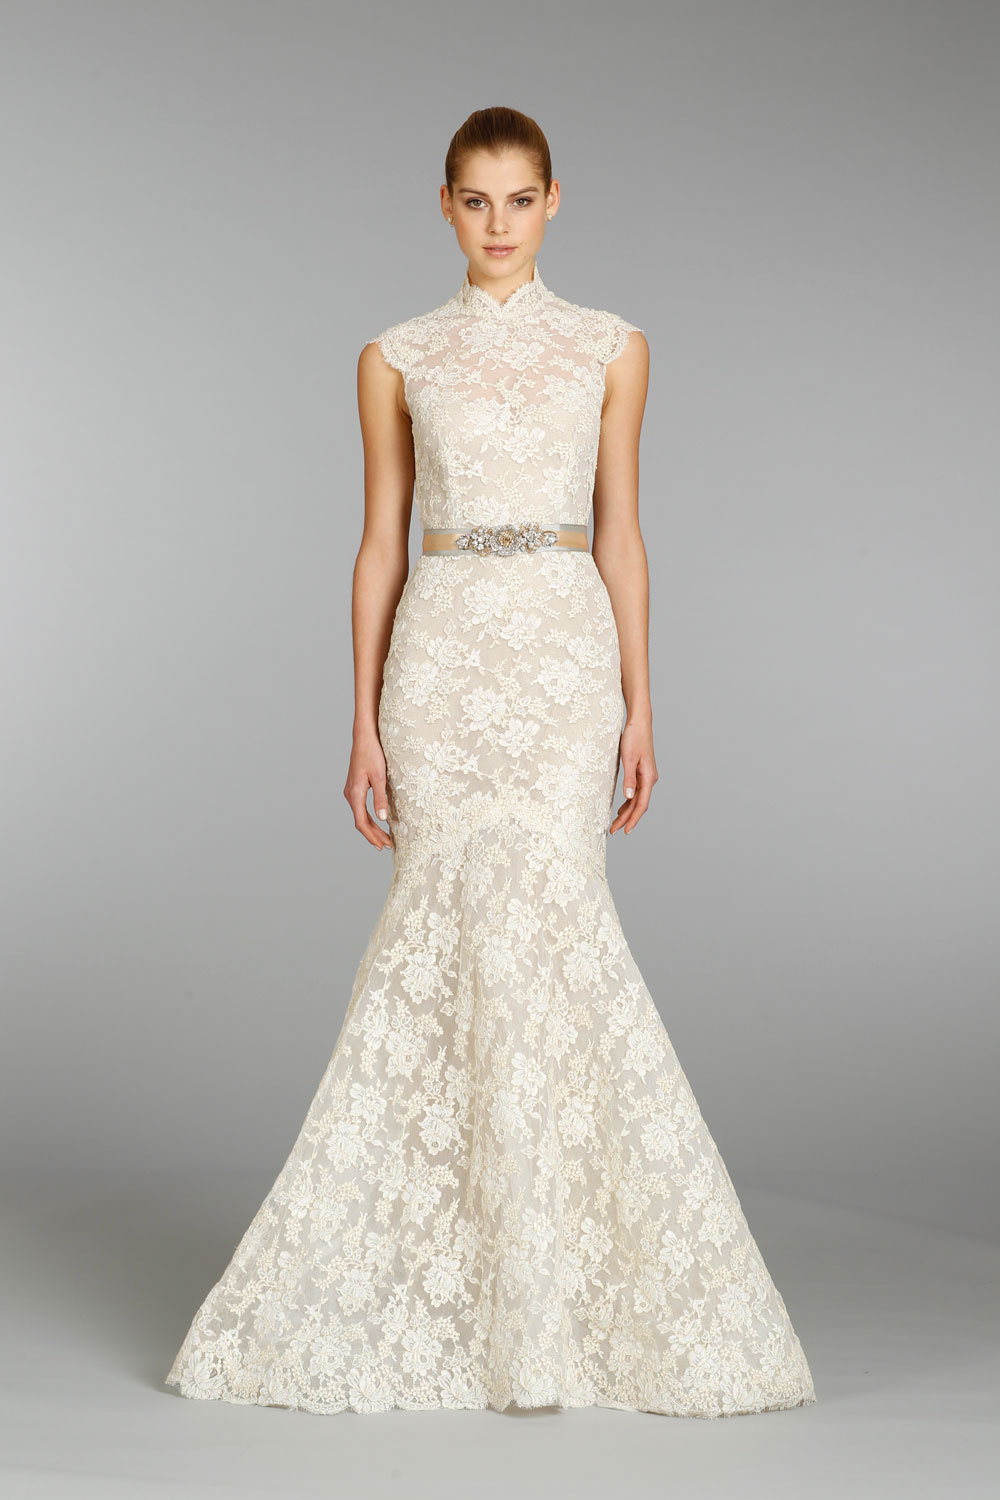 Lazaro-wedding-dress-fall-2013-bridal-3352.full